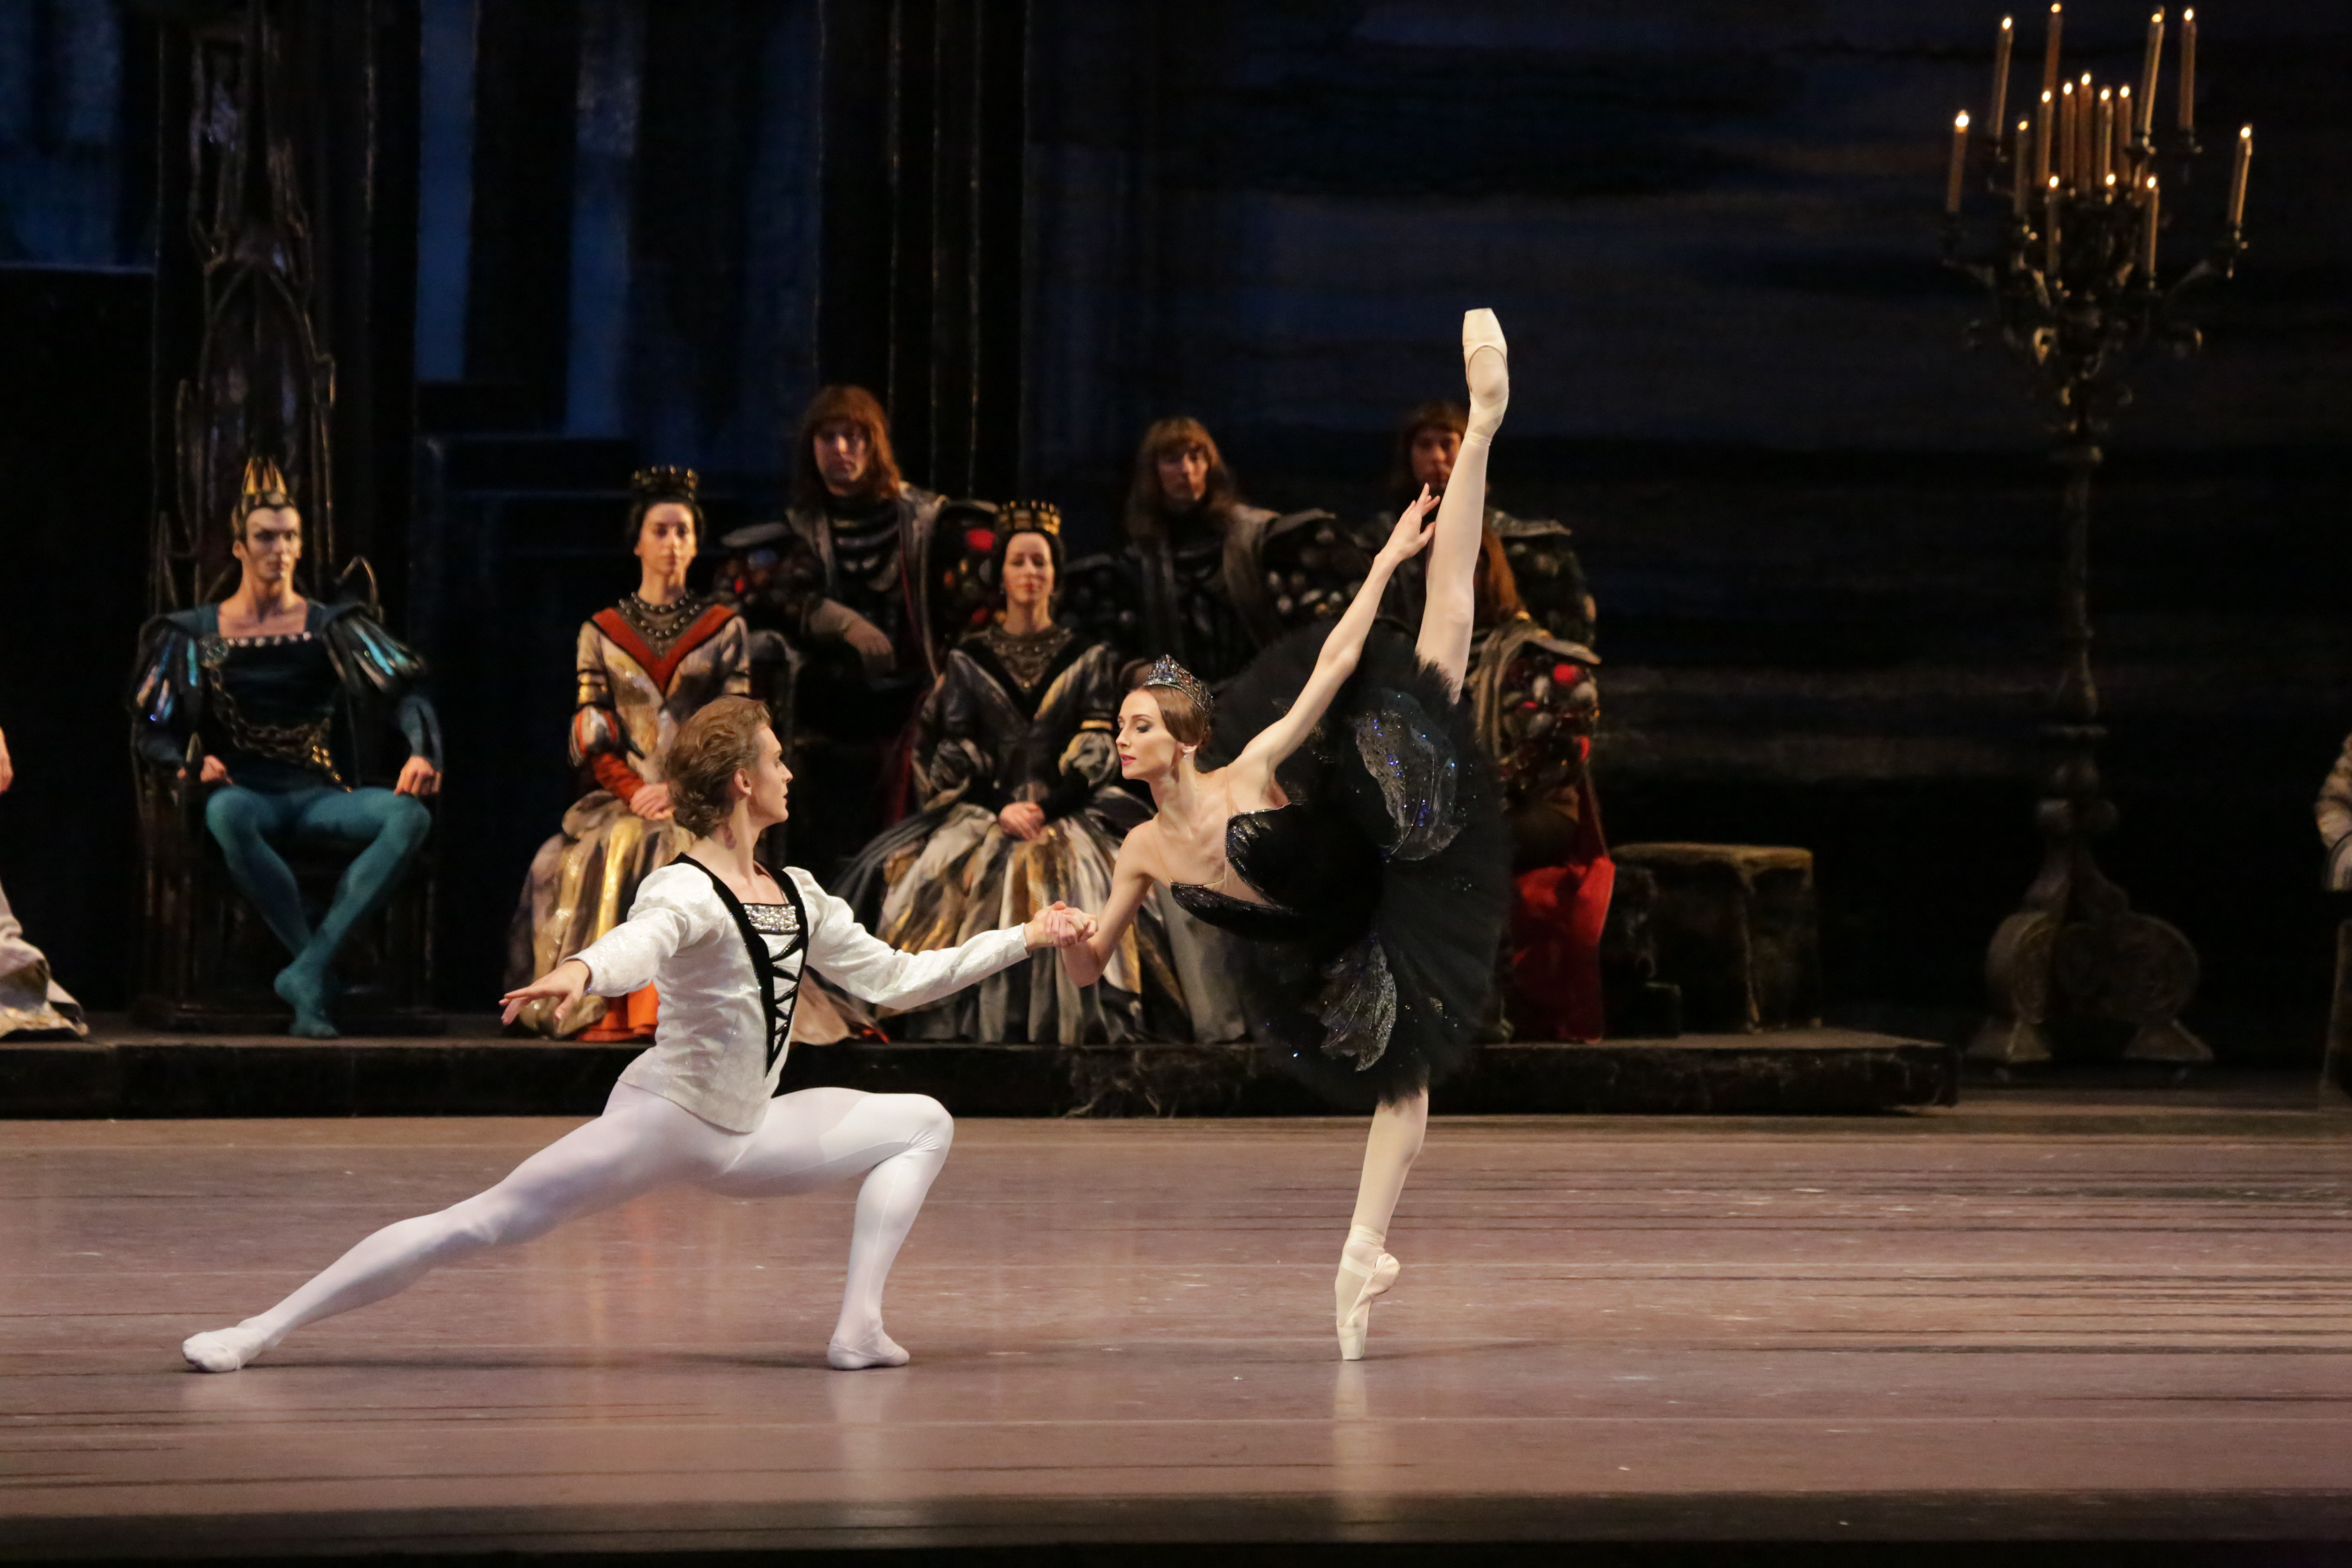 Swan Lake - Svetlana Zakharova and Denis Rodkin (Credit: Damir Yusupov)